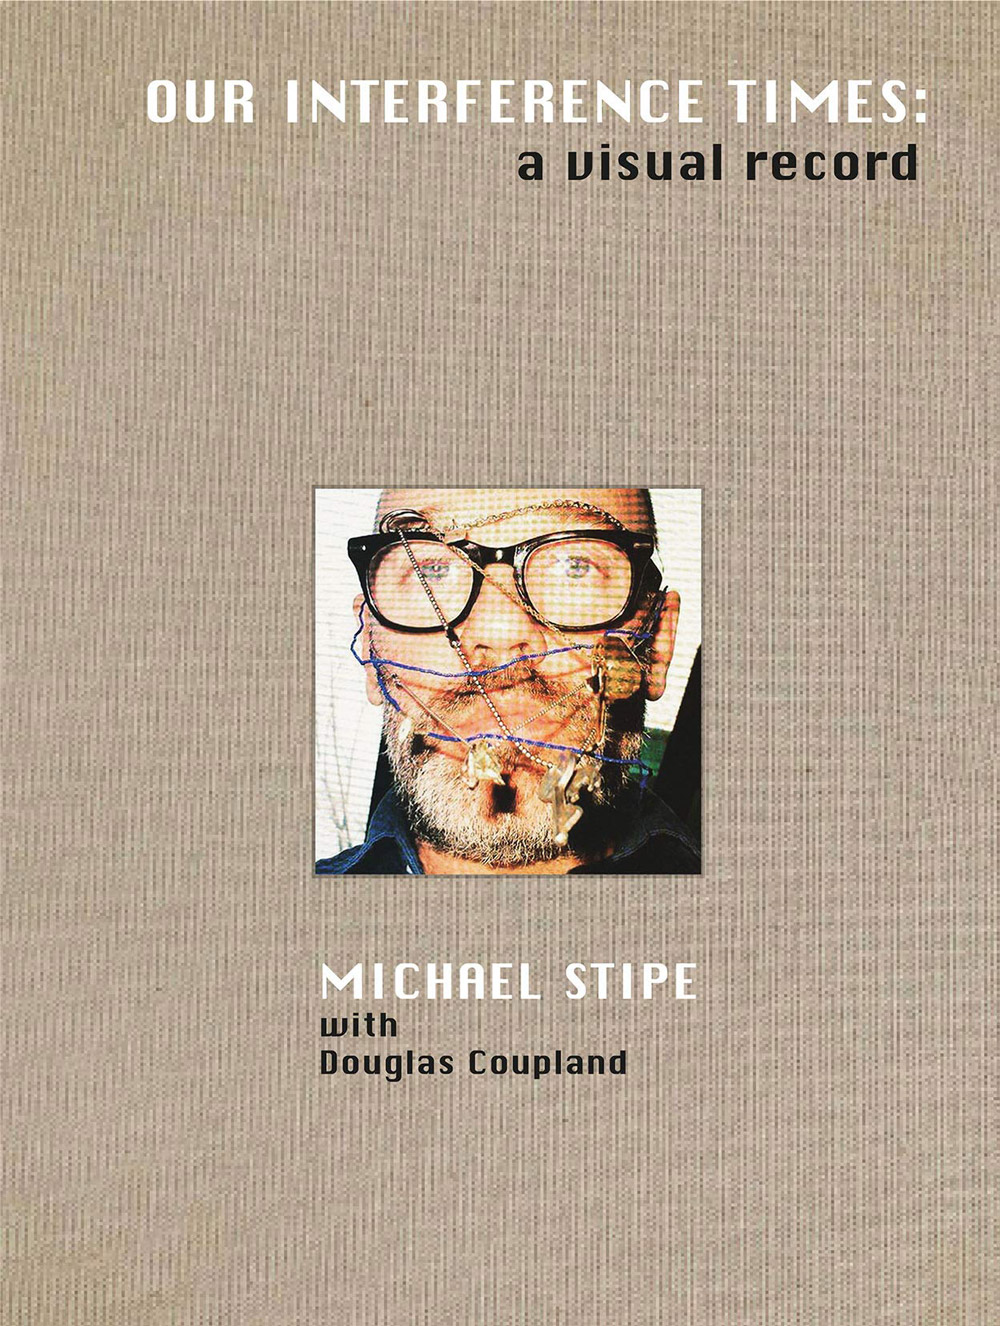 Michael Stipe's book: Our Interference Times: A Visual Record book cover